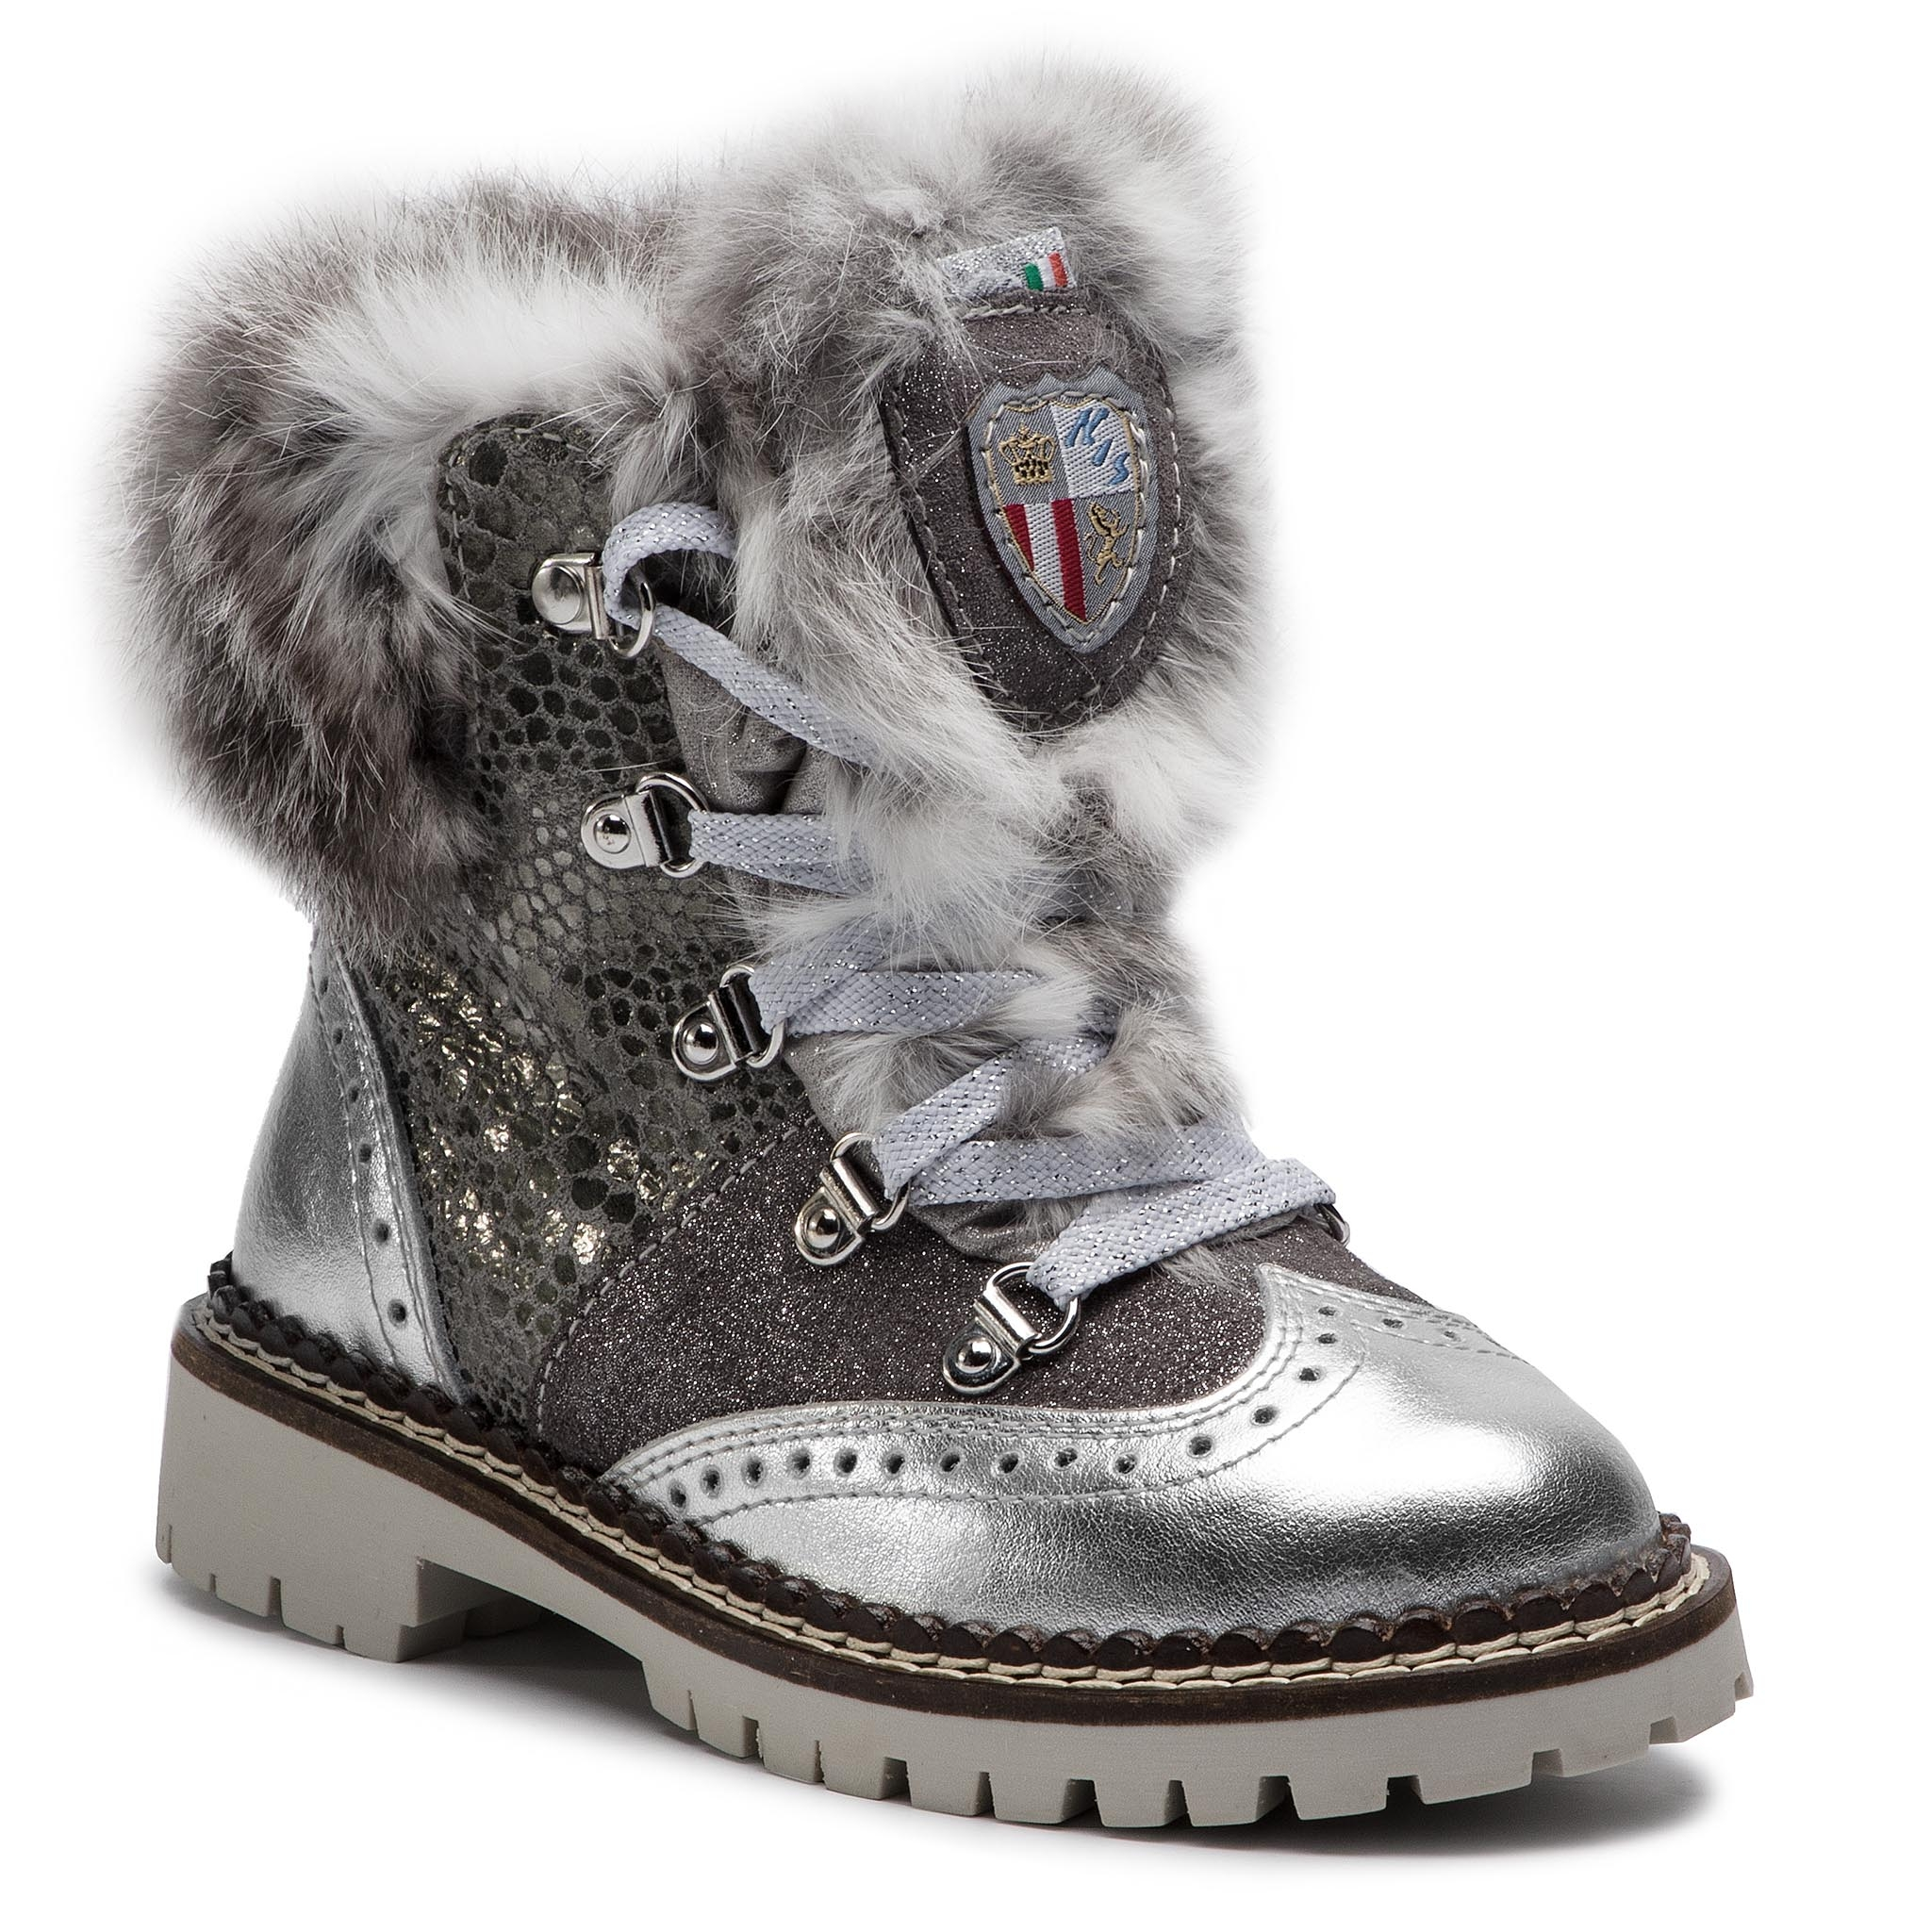 Bottes NEW ITALIA SHOES - 1914708a/1 Ash Grey